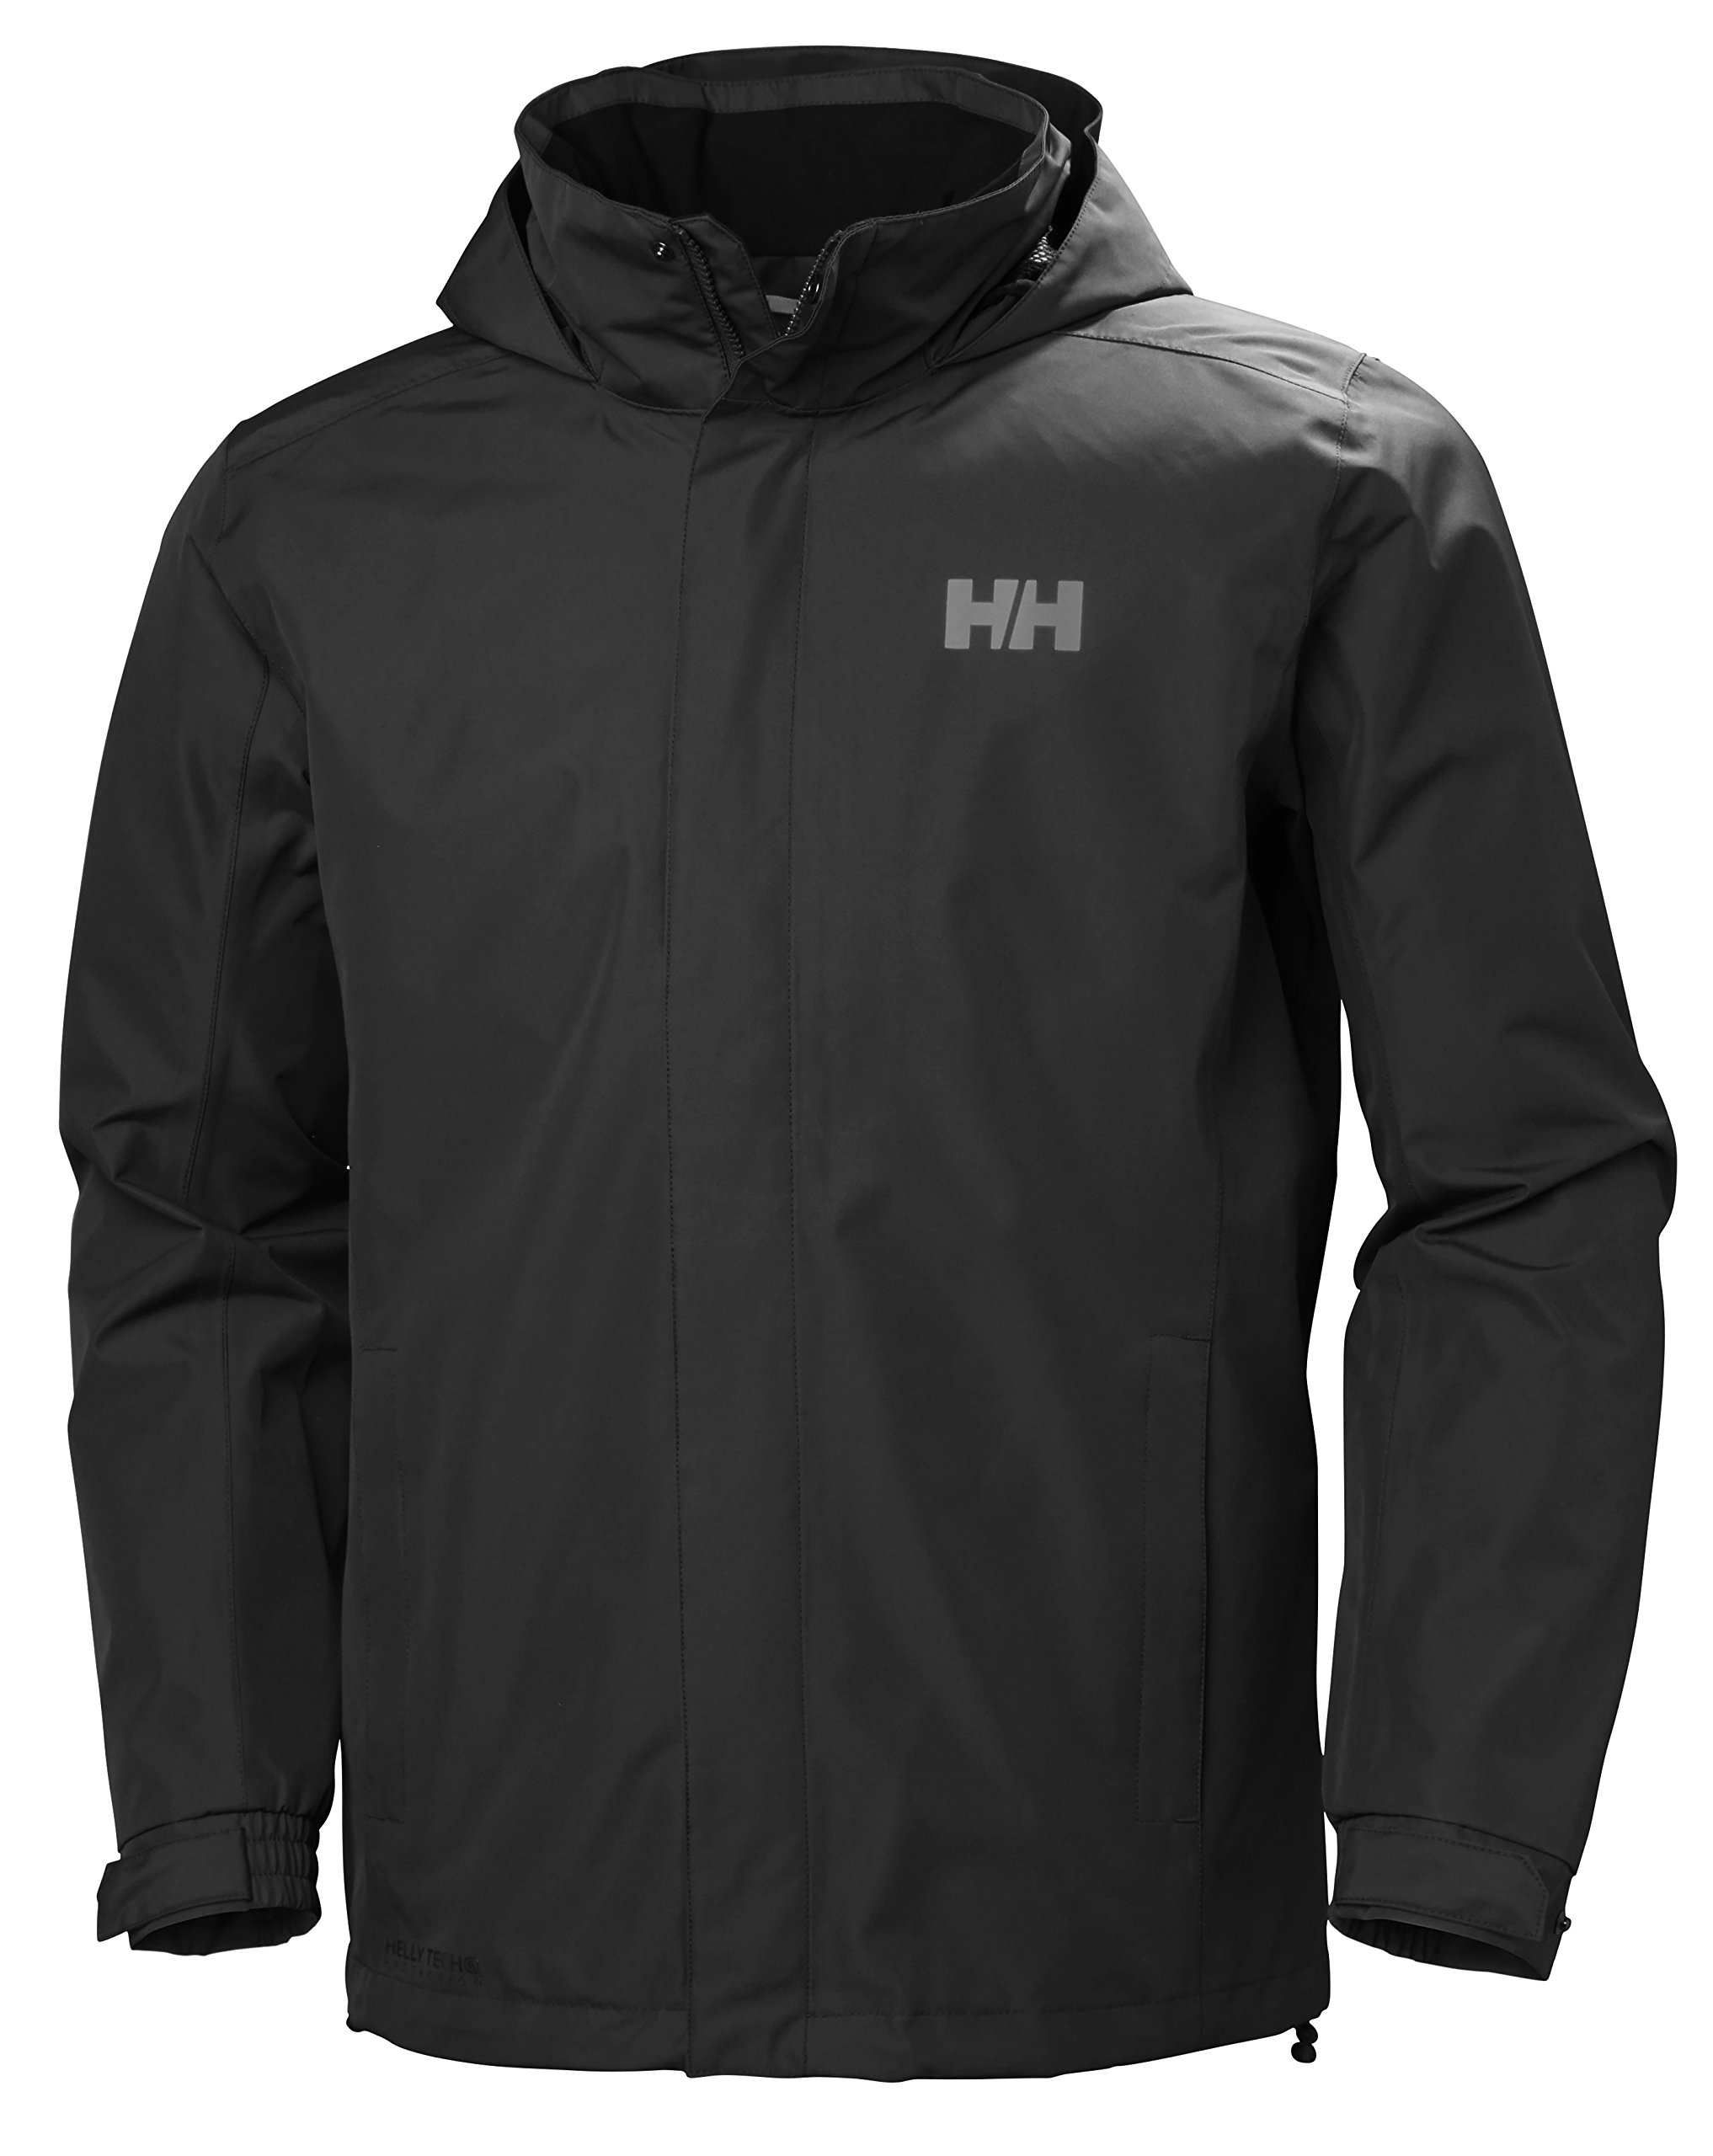 Helly Hansen Men's Dubliner Jacket Waterproof, Windproof, Breathable Shell Rain Coat with Packable Hood, 990 Black, Large by Helly Hansen